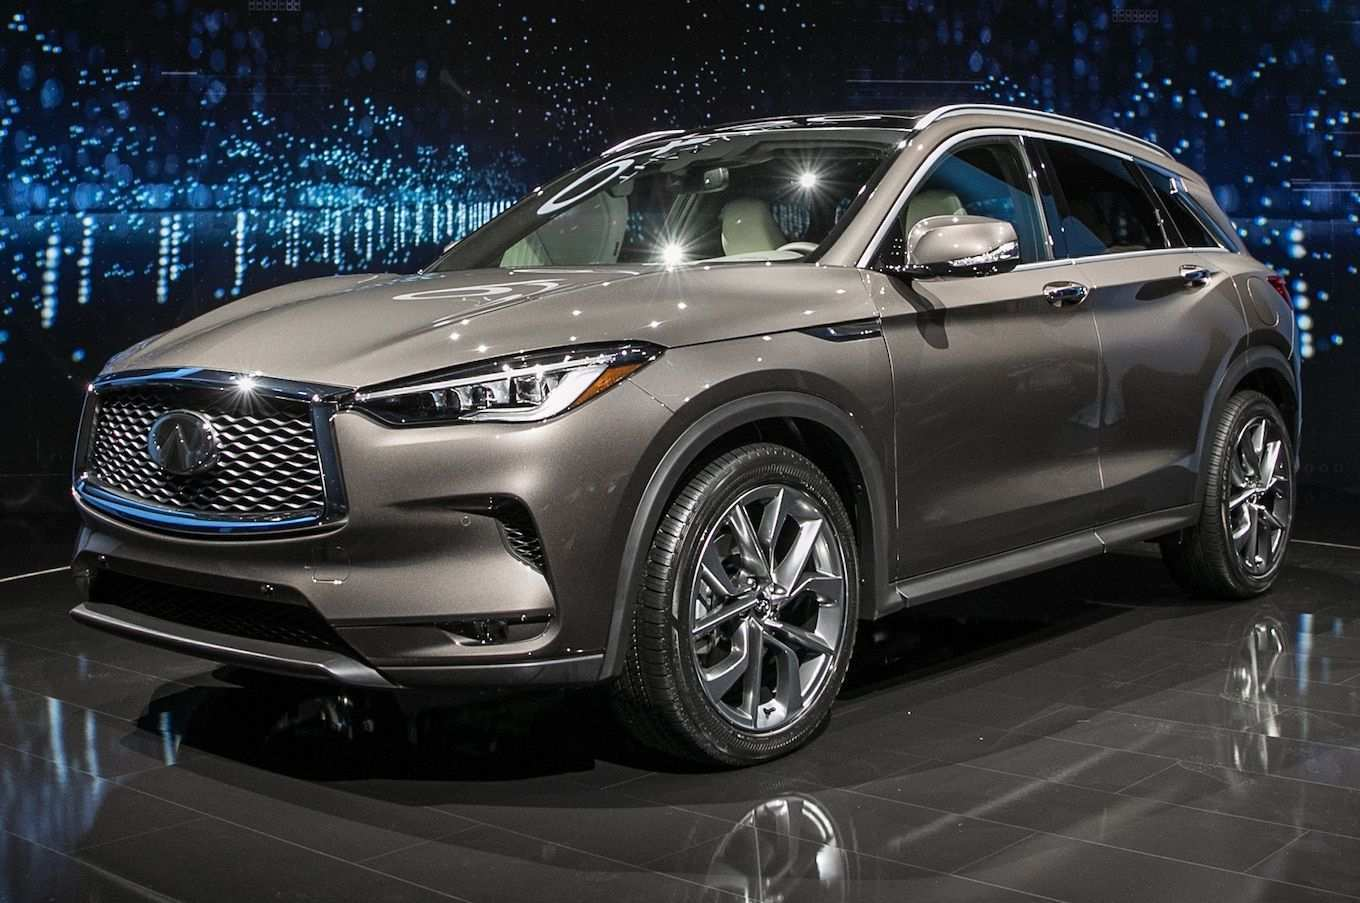 94 Great 2020 Infiniti Qx50 Exterior First Drive for 2020 Infiniti Qx50 Exterior